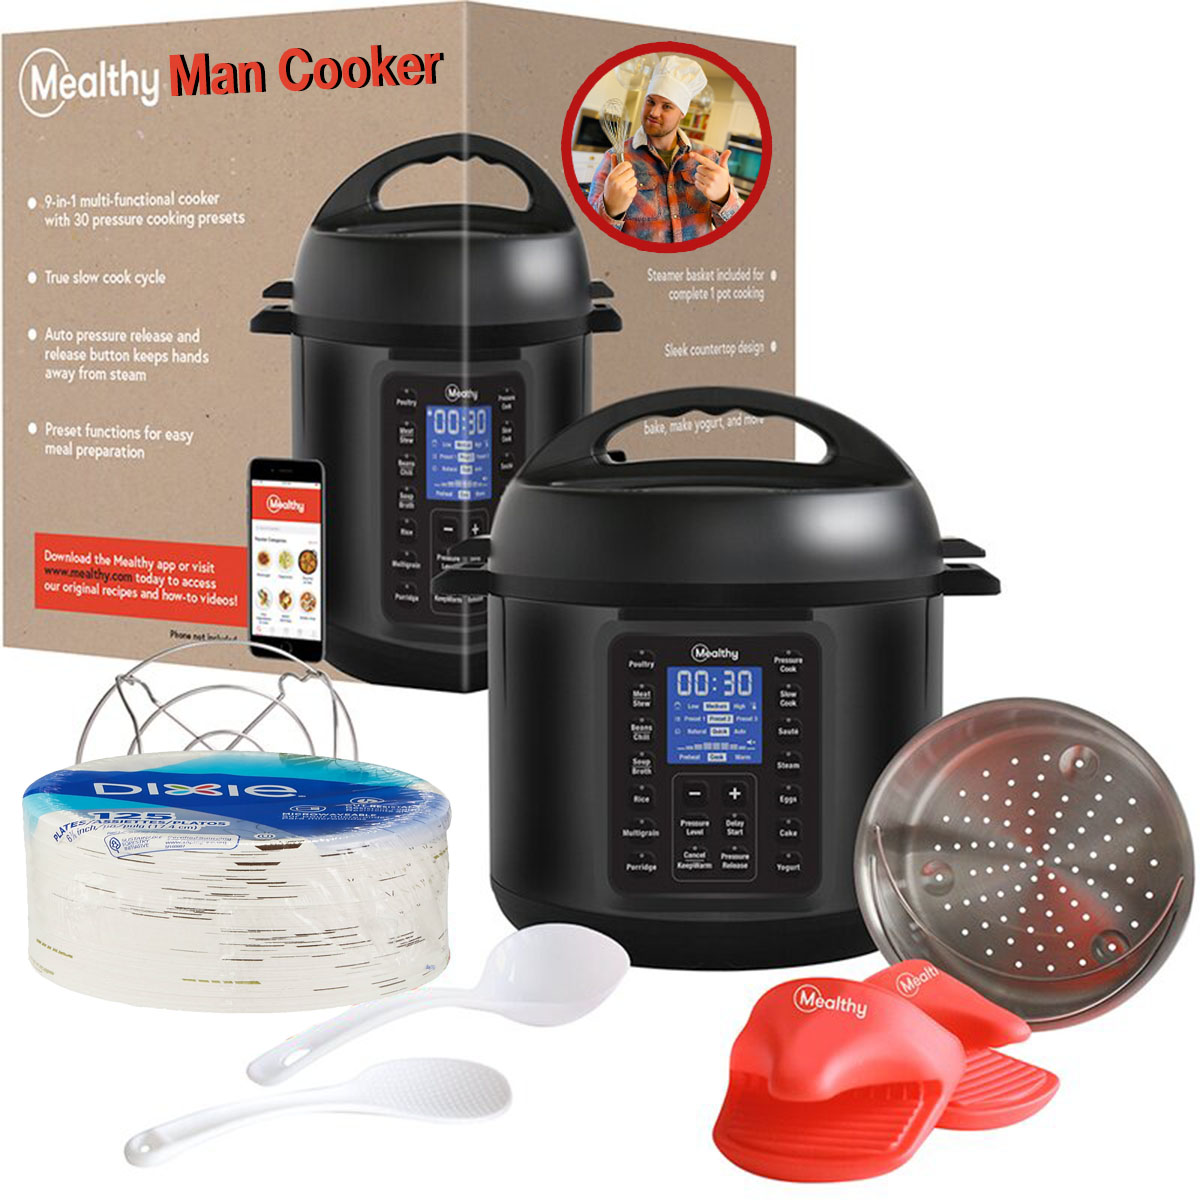 mealthy man cooker